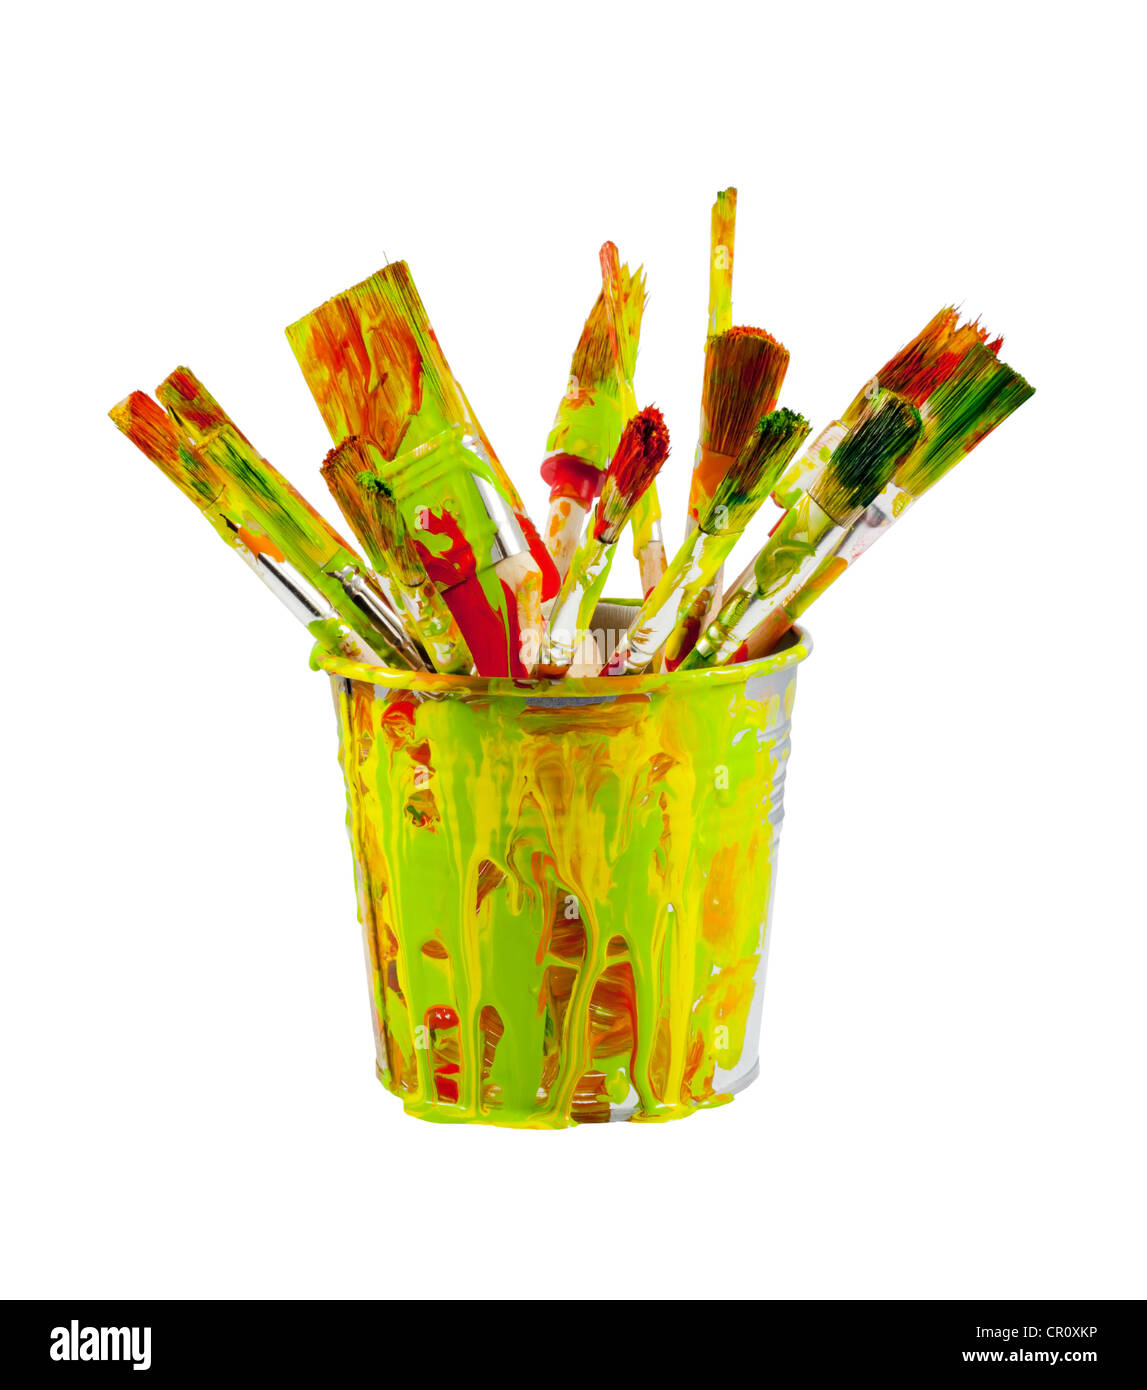 Paint brushes in the colorful bucket on white background - Stock Image